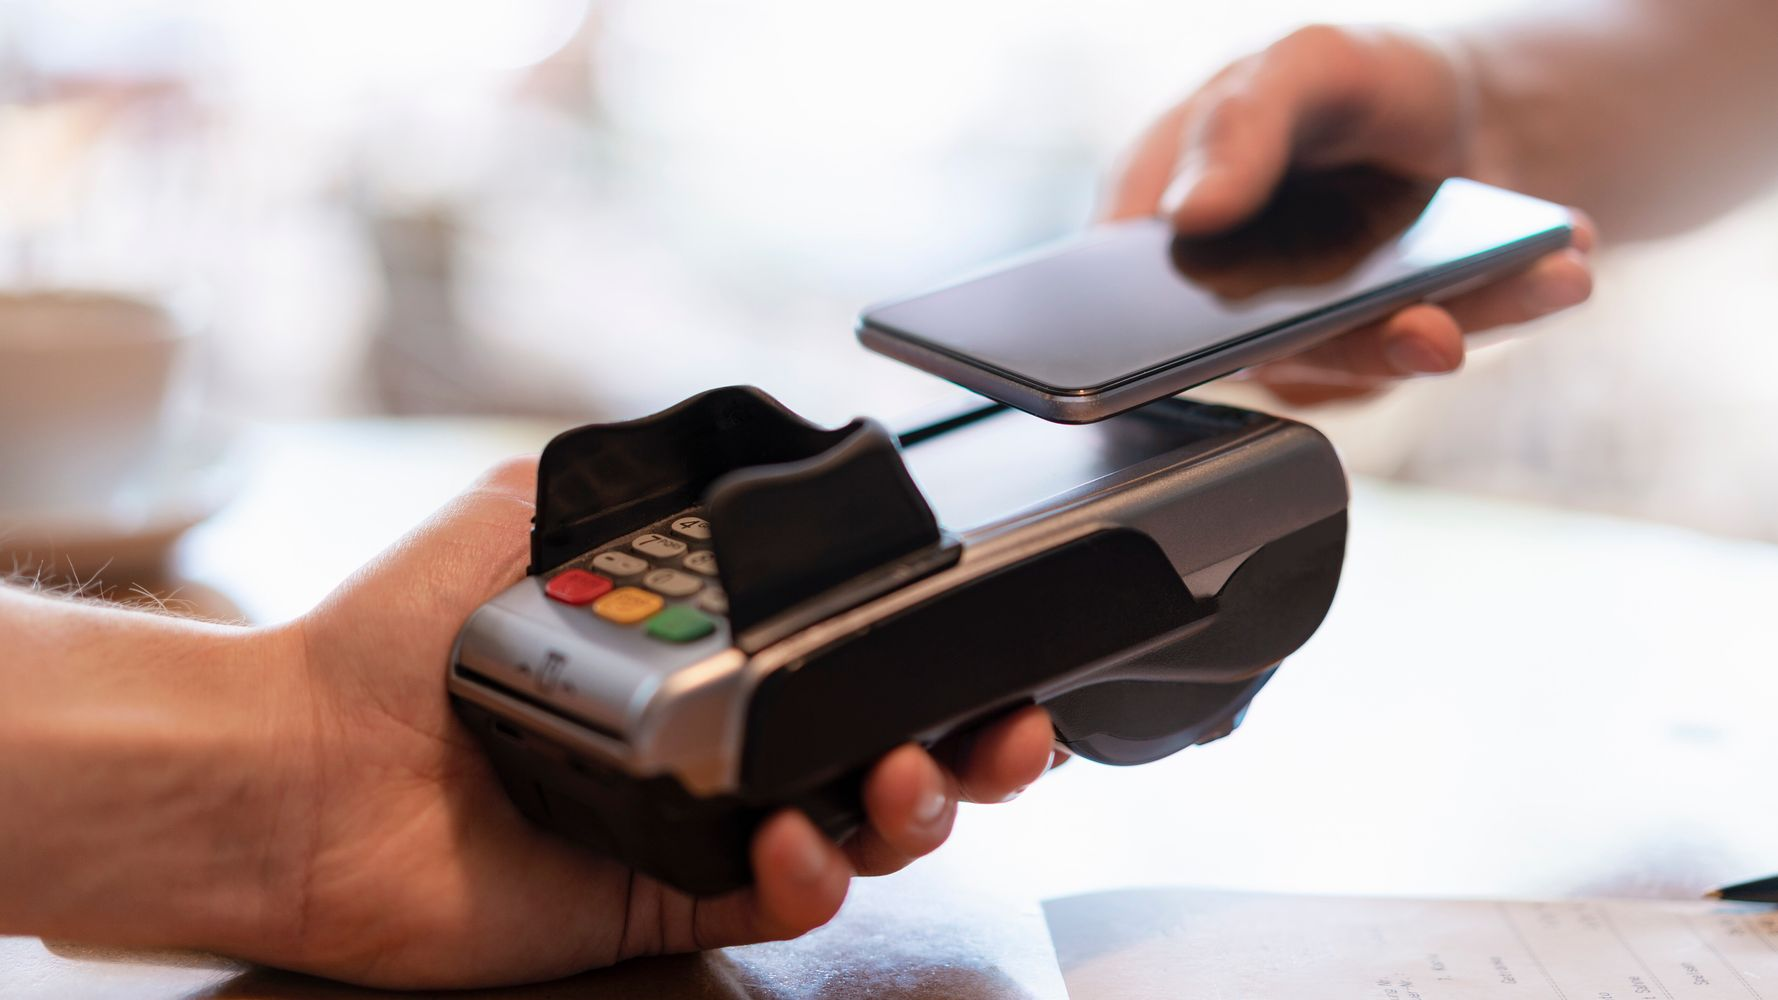 8 Contactless Payment Apps To Help You Avoid Touching Cash